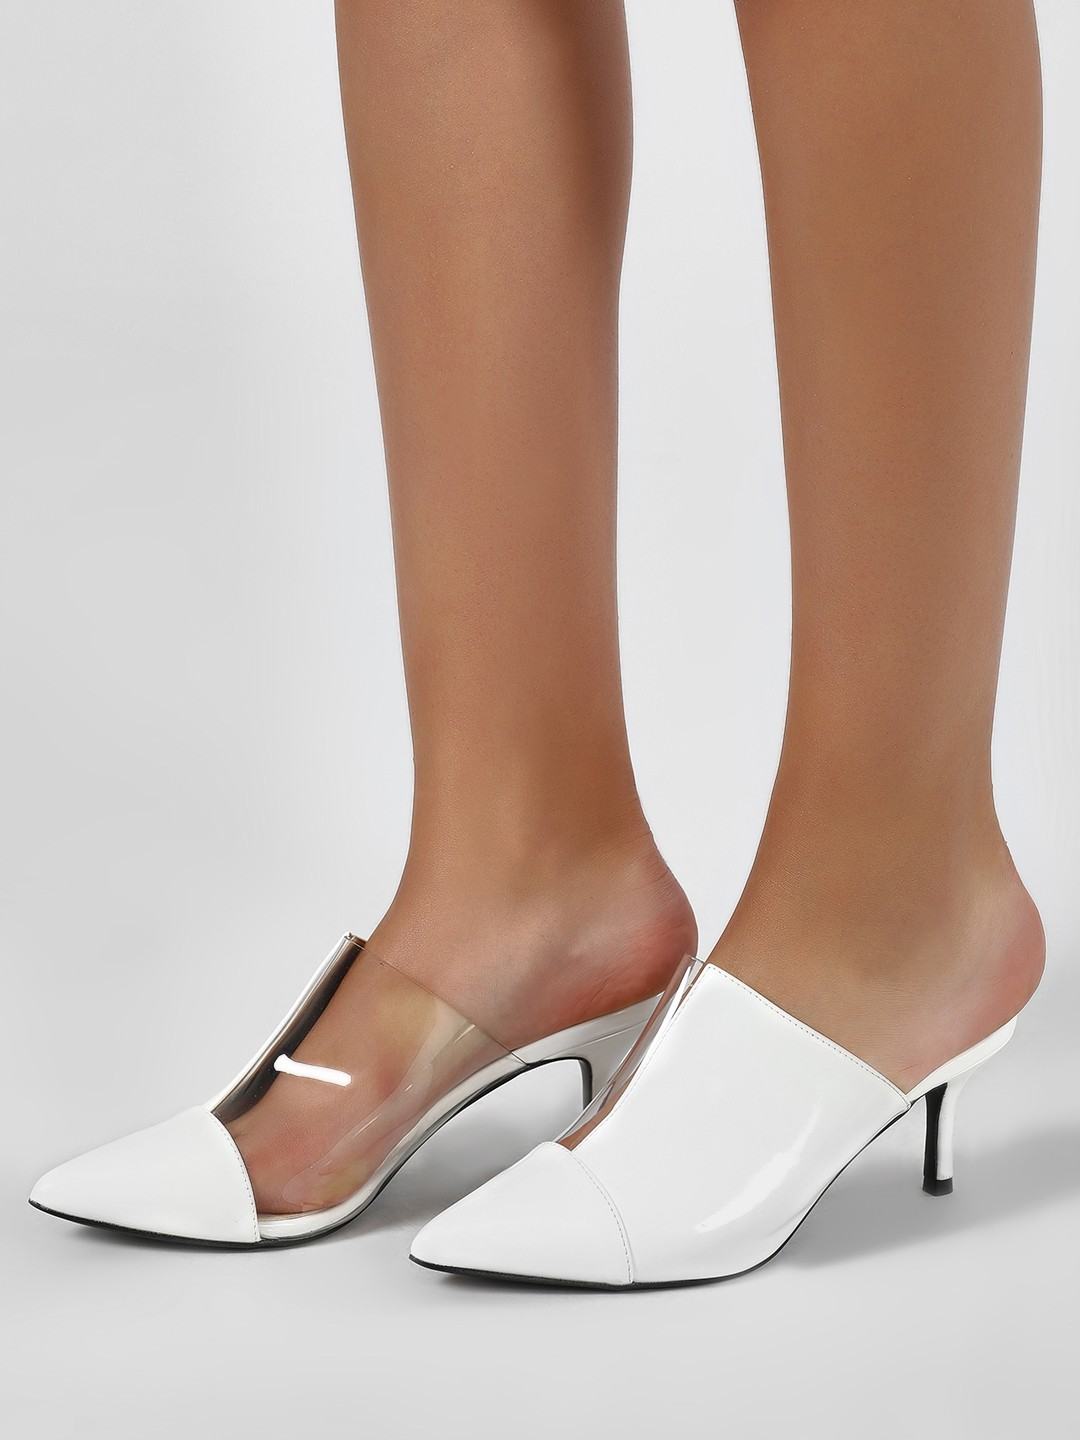 Intoto White Half-n-Half Perspex And Patent Mules 1